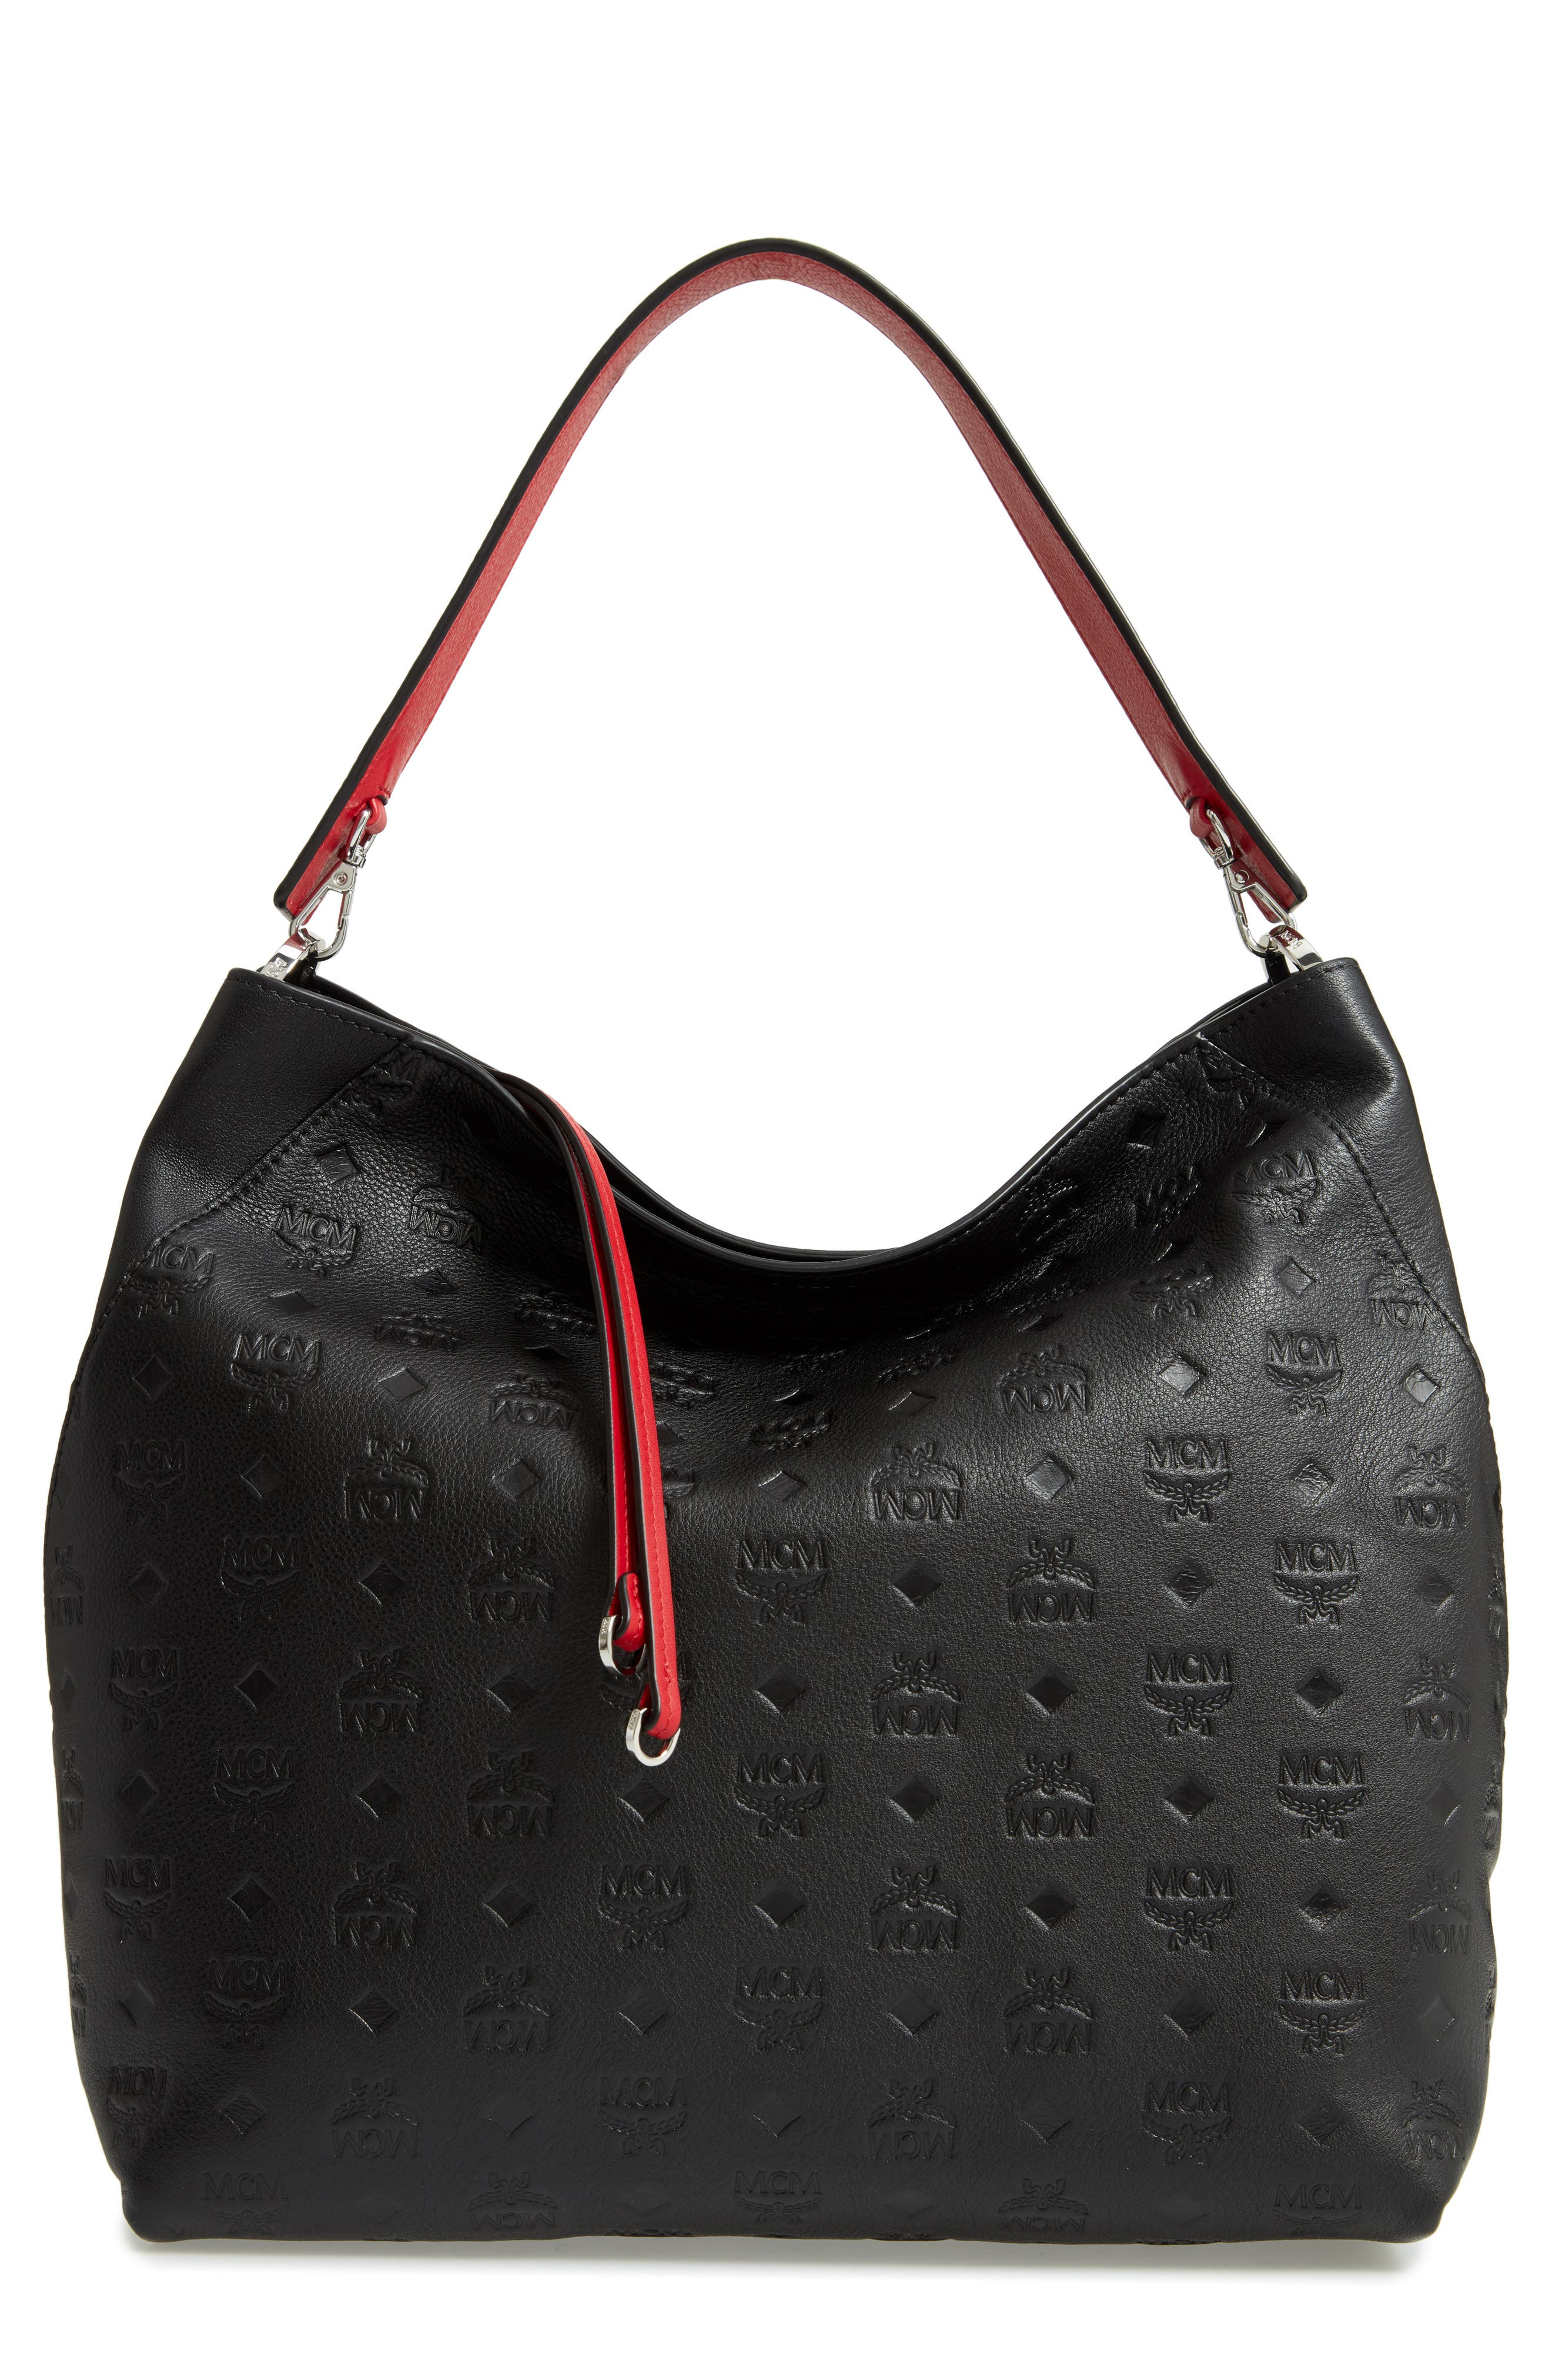 Klara Monogrammed Leather Hobo Bag,                             Main thumbnail 1, color,                             001